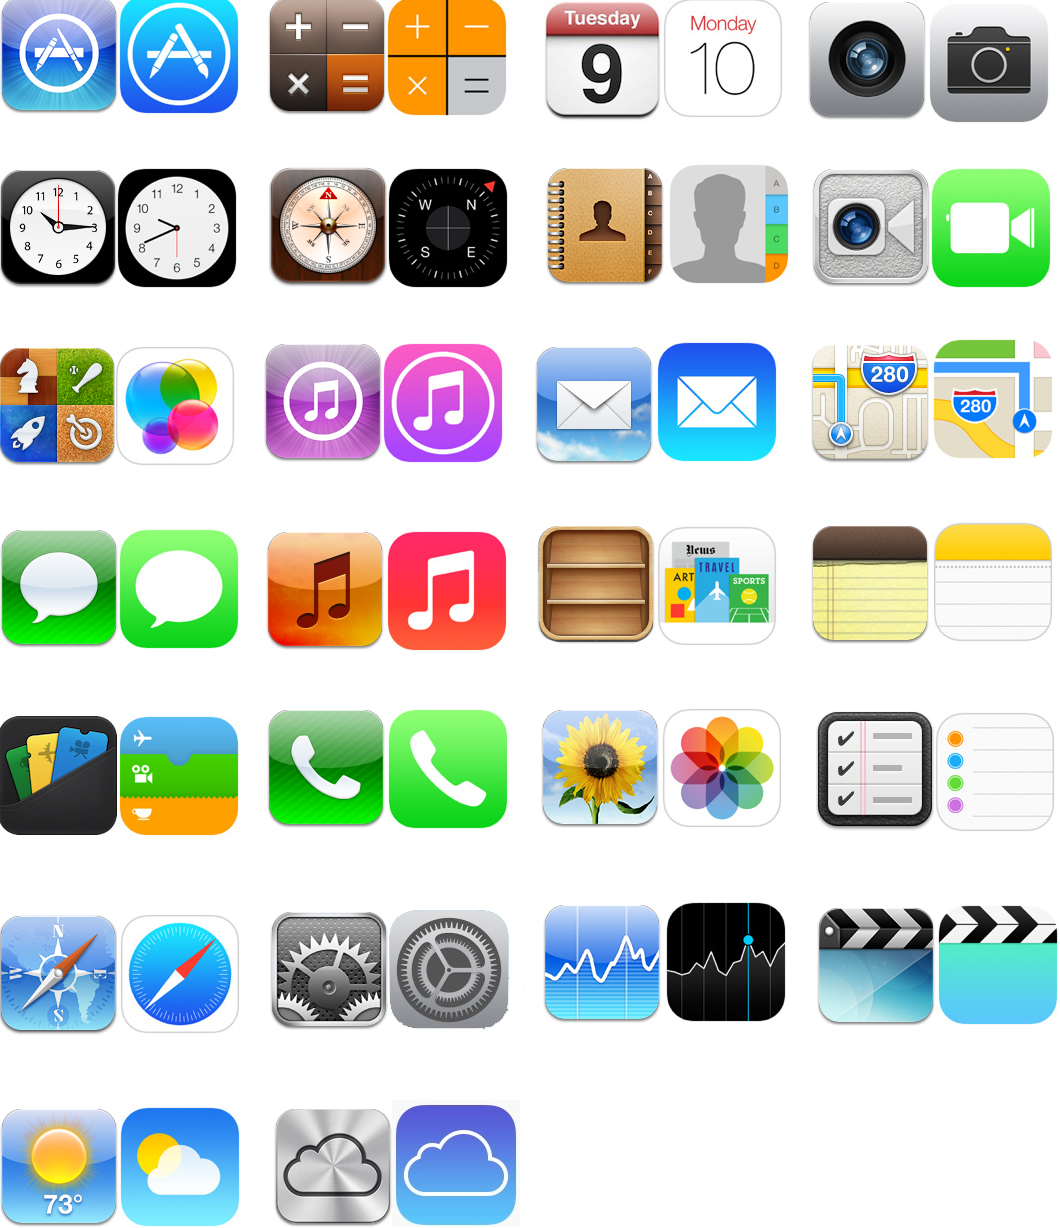 7 IOS 7 Icons Images